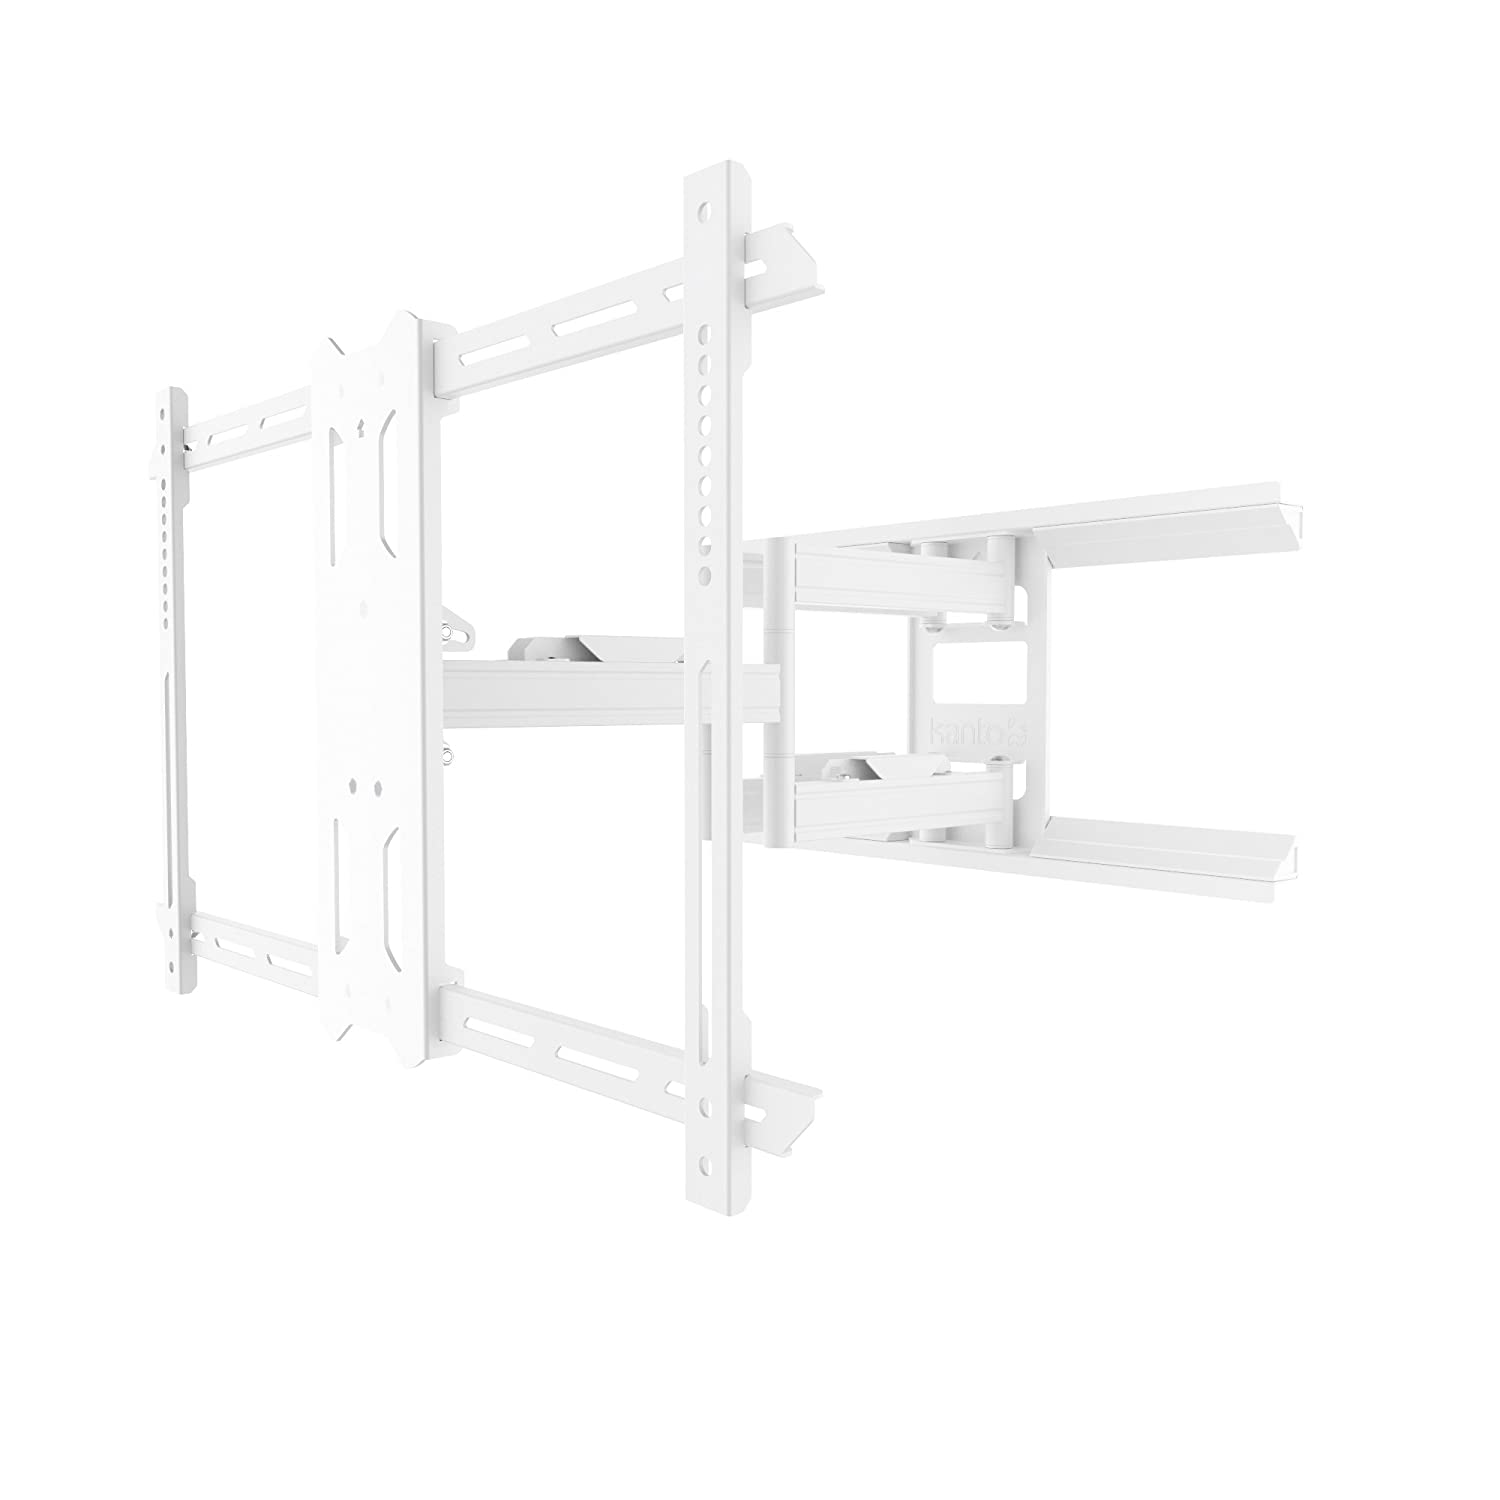 Kanto PDX650W Full-Motion TV Wall Mount for 37-inch to 75-inch Flat-Screen Monitor – White